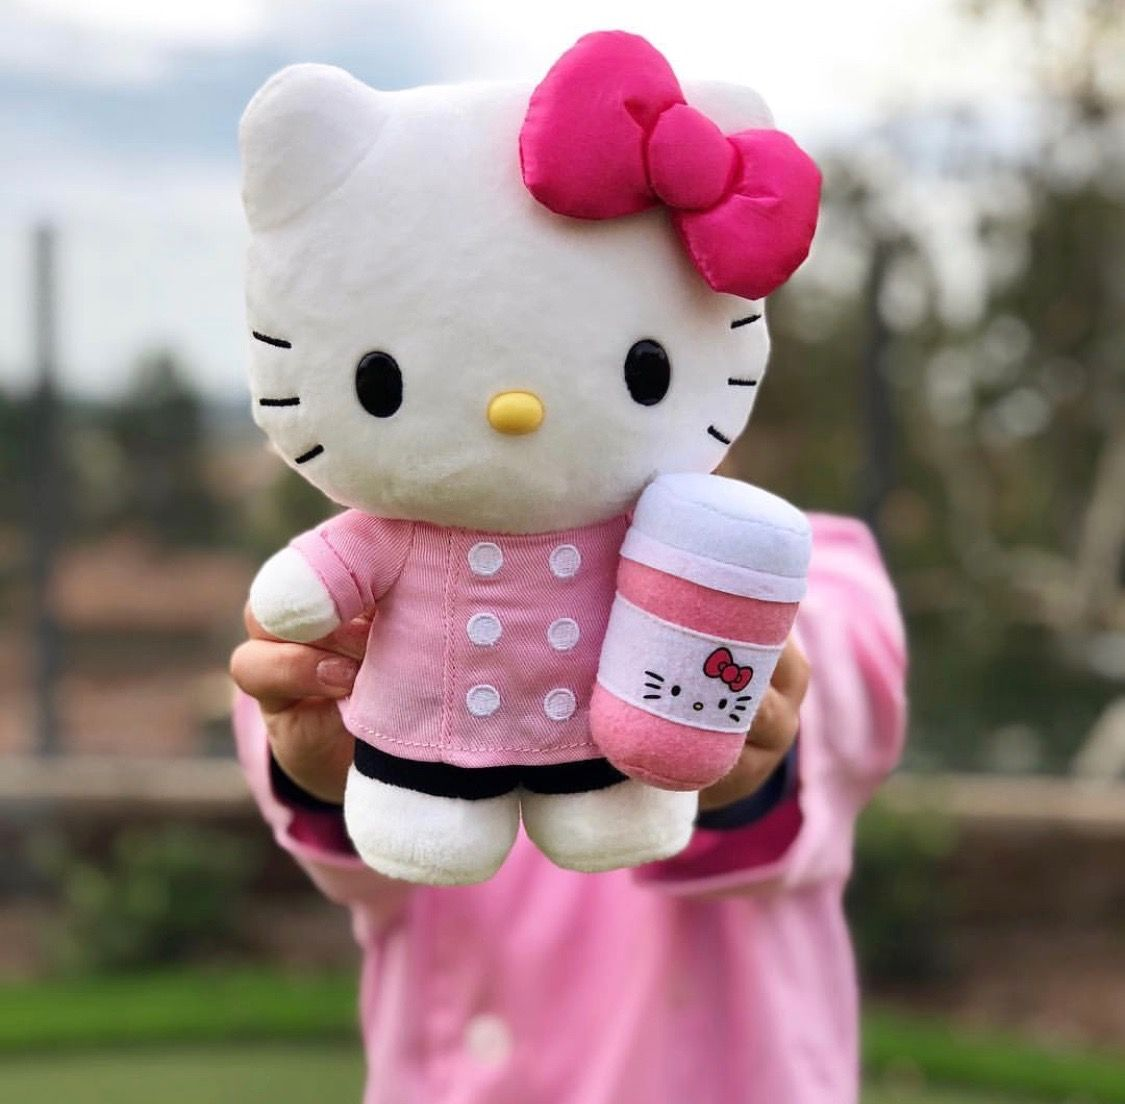 HelloKitty café's exclusive plush (^.^) pink cup